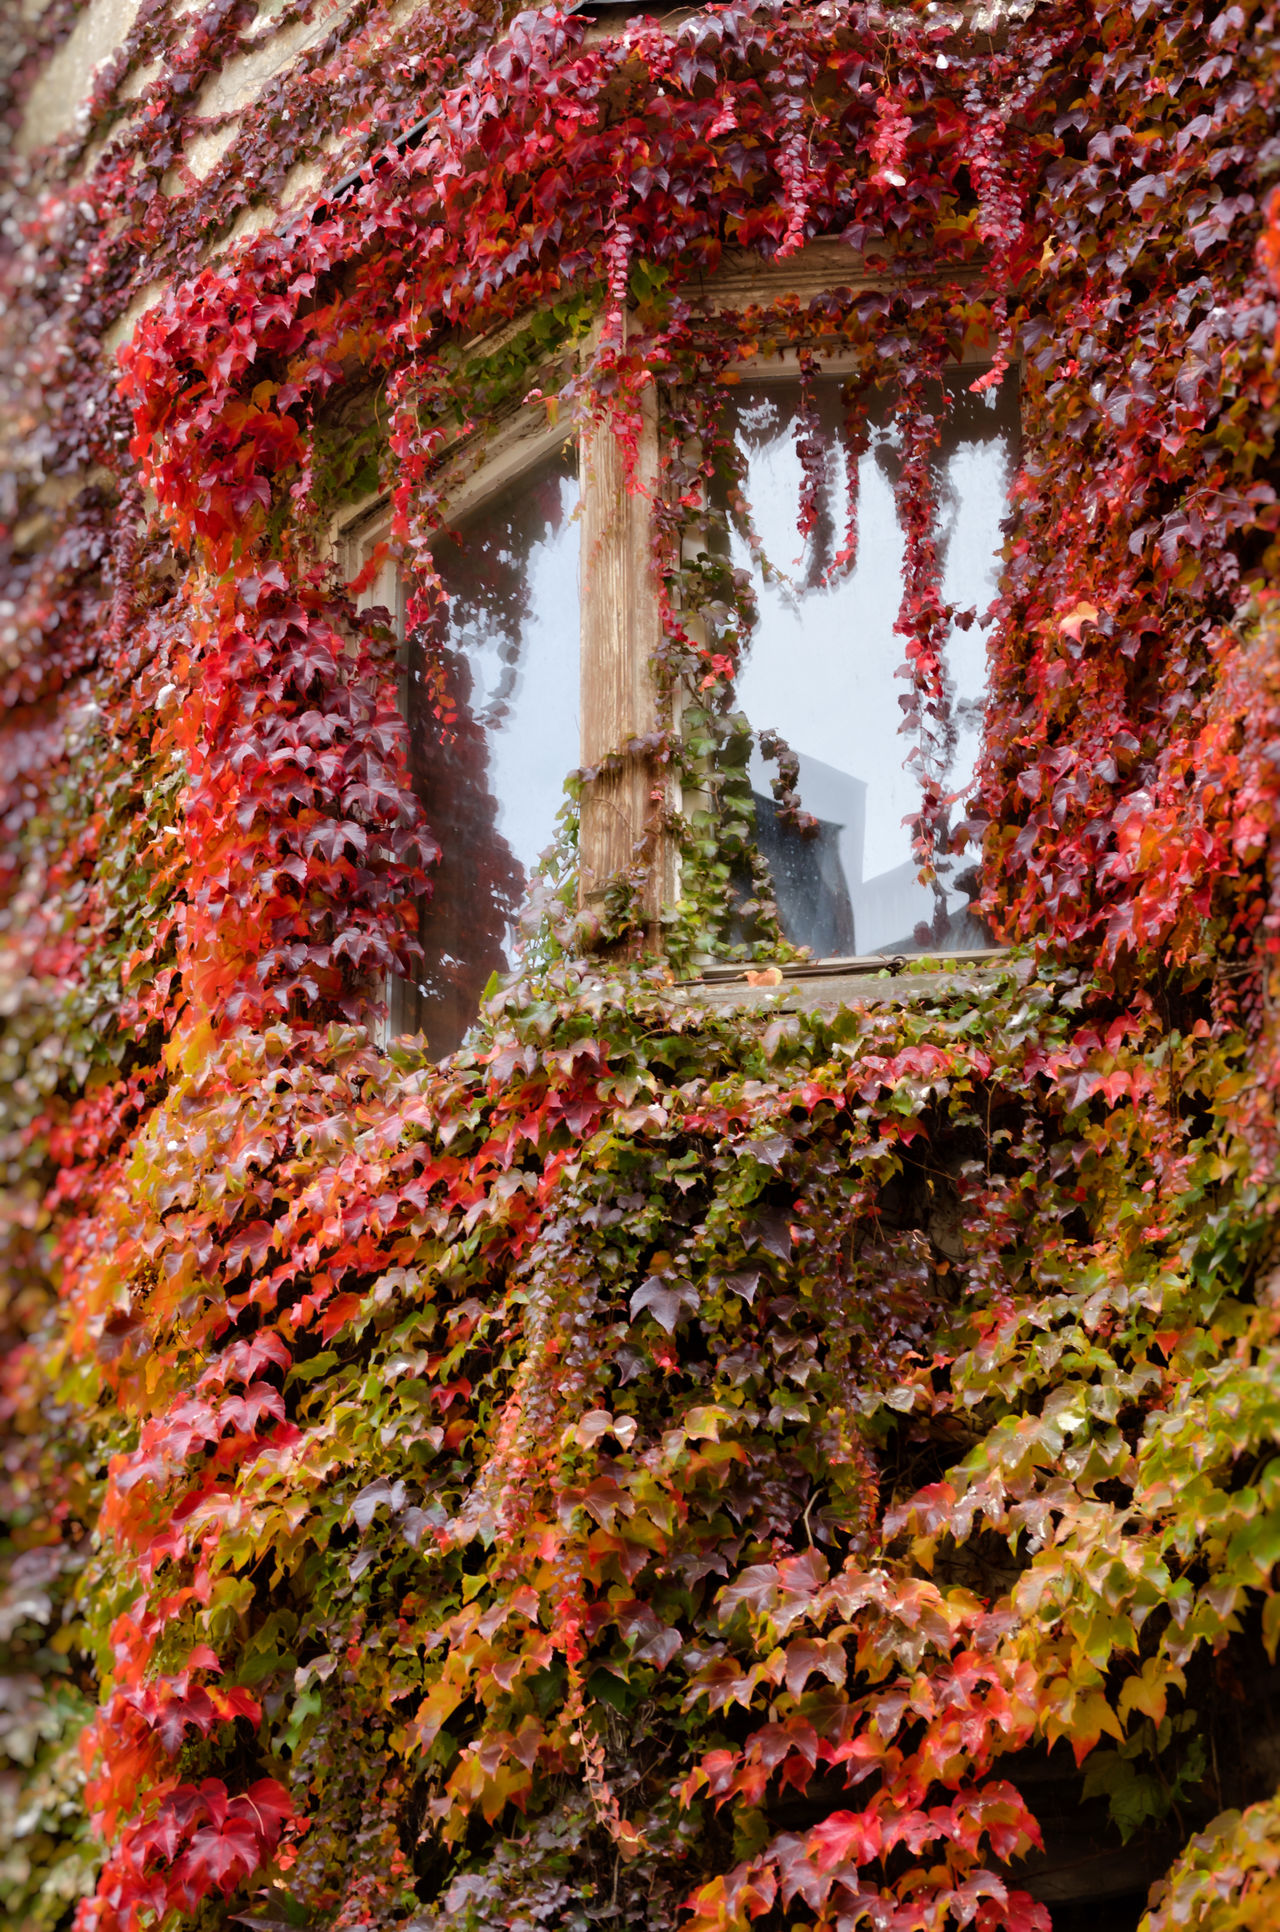 Colourful ivy covers a building around a window in Bressanone, Italy Architecture Autumn Autumn Beauty In Nature Bressanone Change Italy Ivy Low Angle View Multi Colored No People Red Season  Window